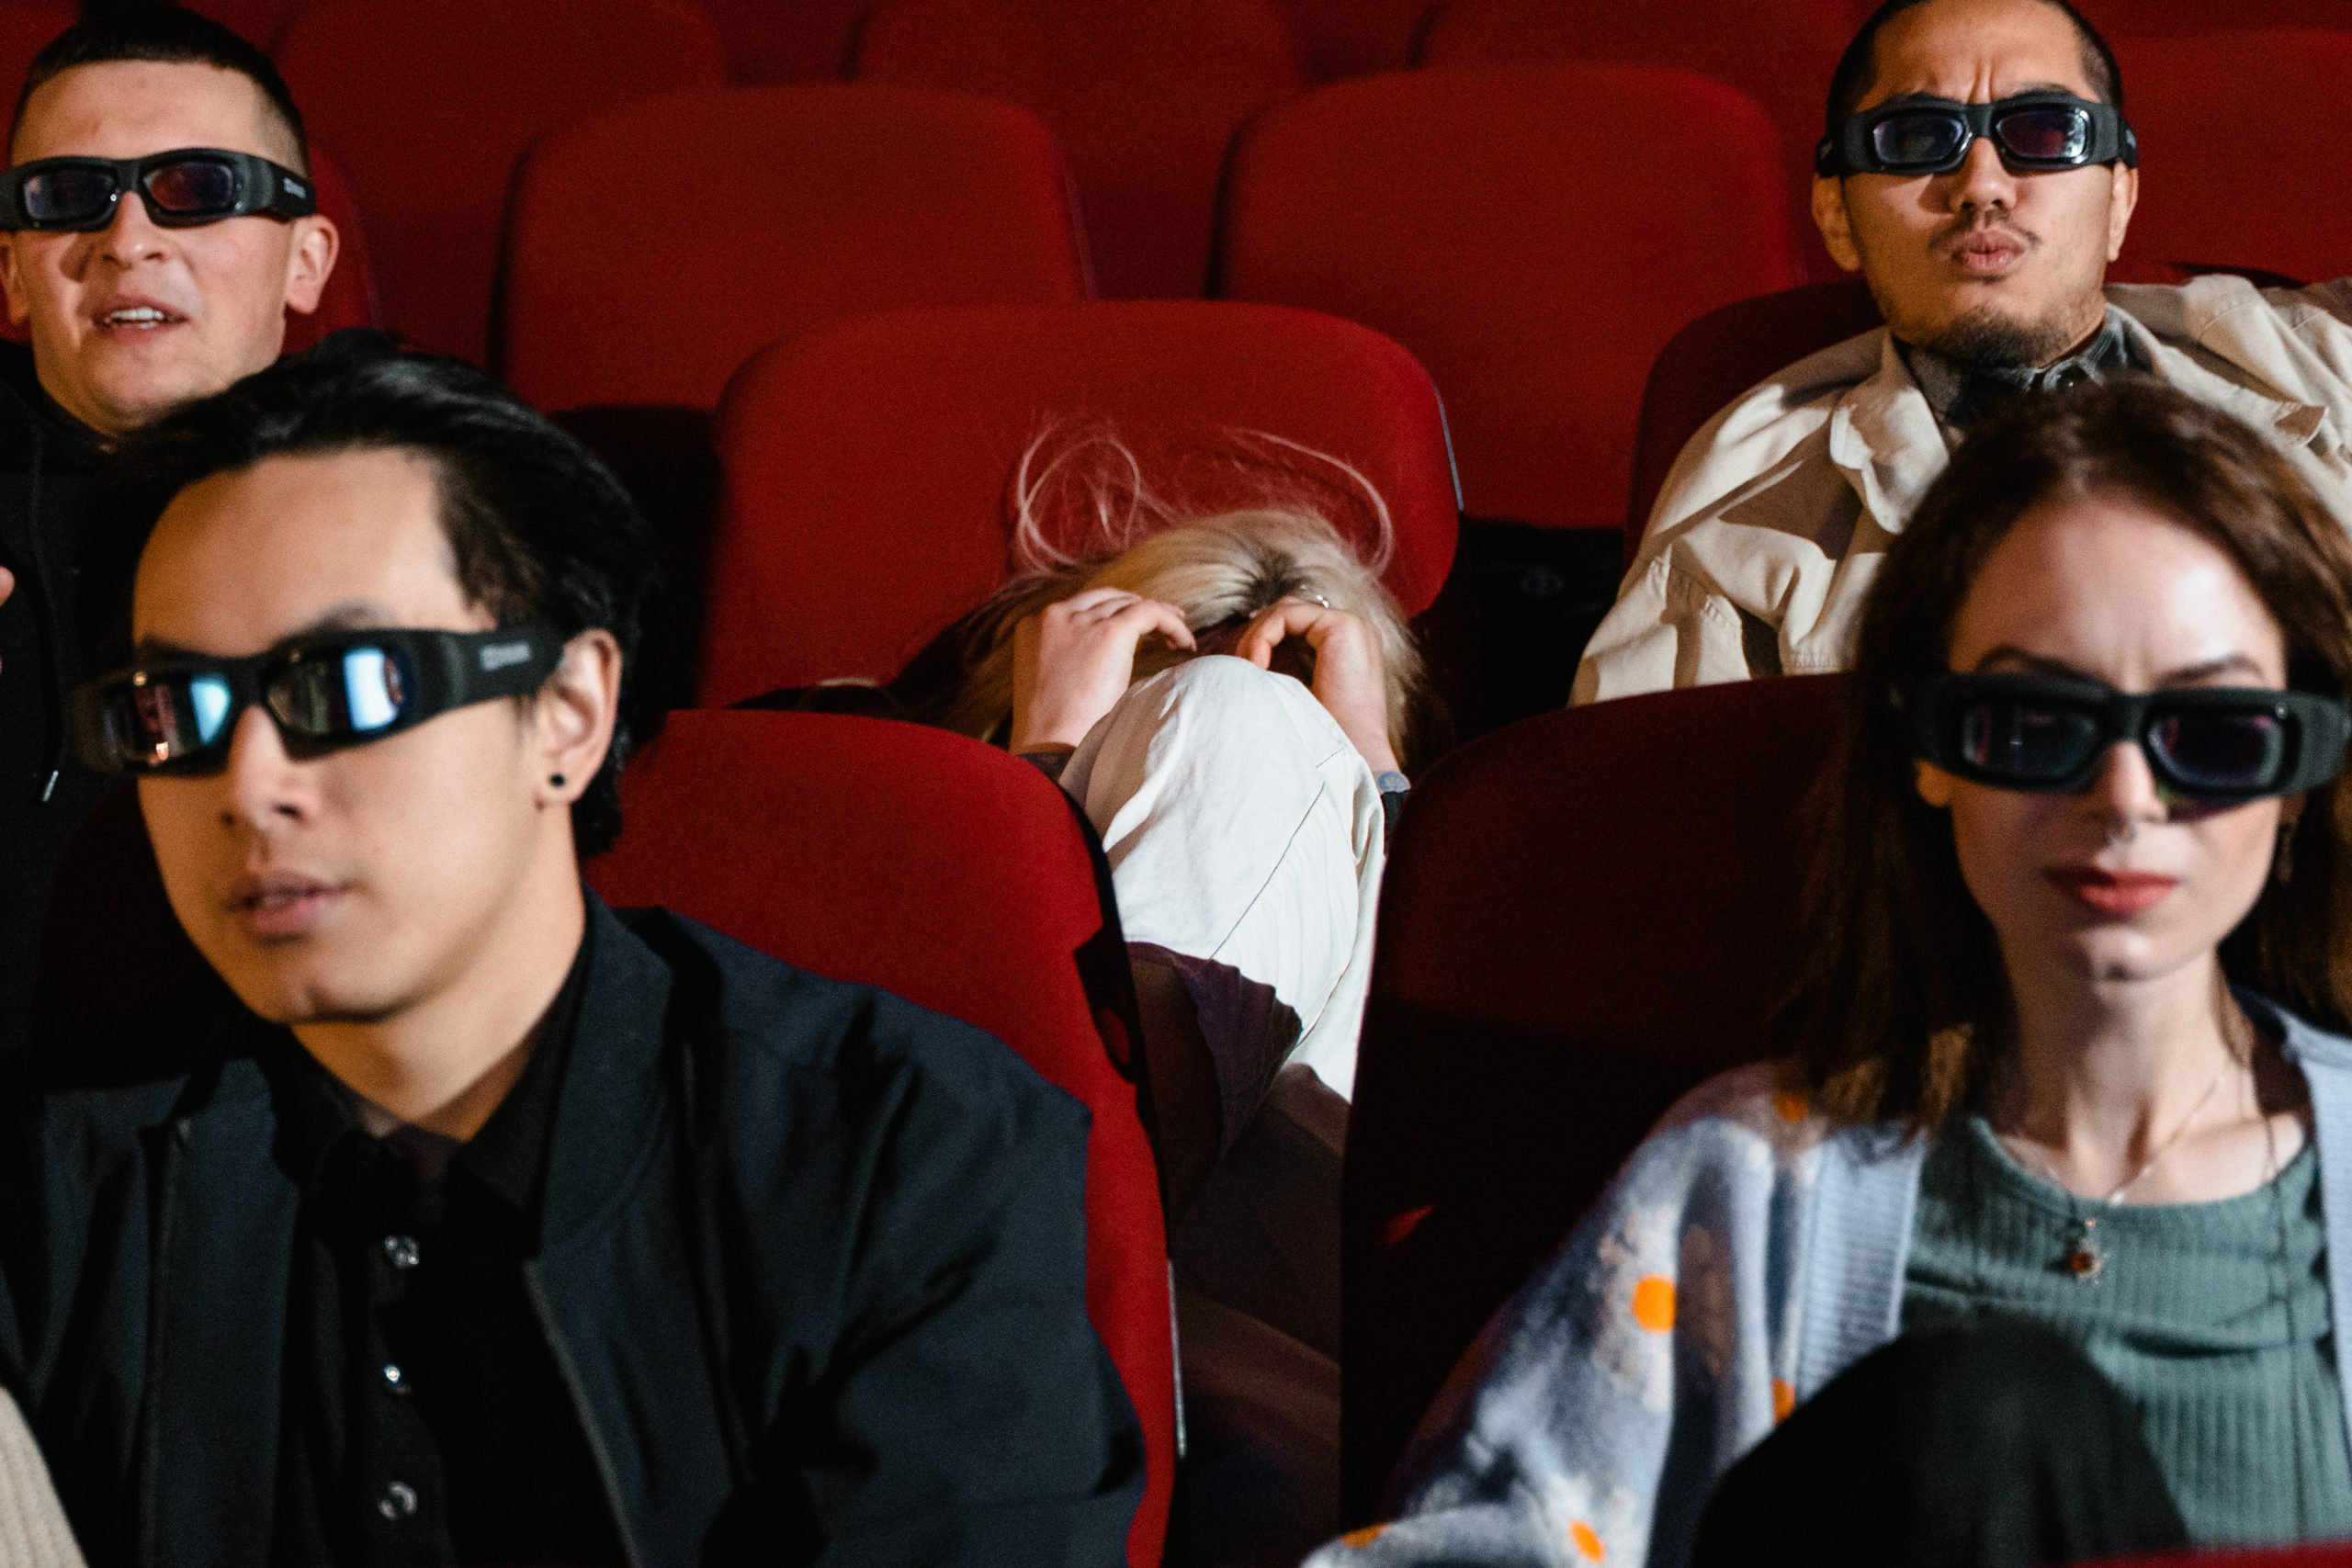 An image which shows people in 3d glasses, it relates to the article which speaks about 3D.